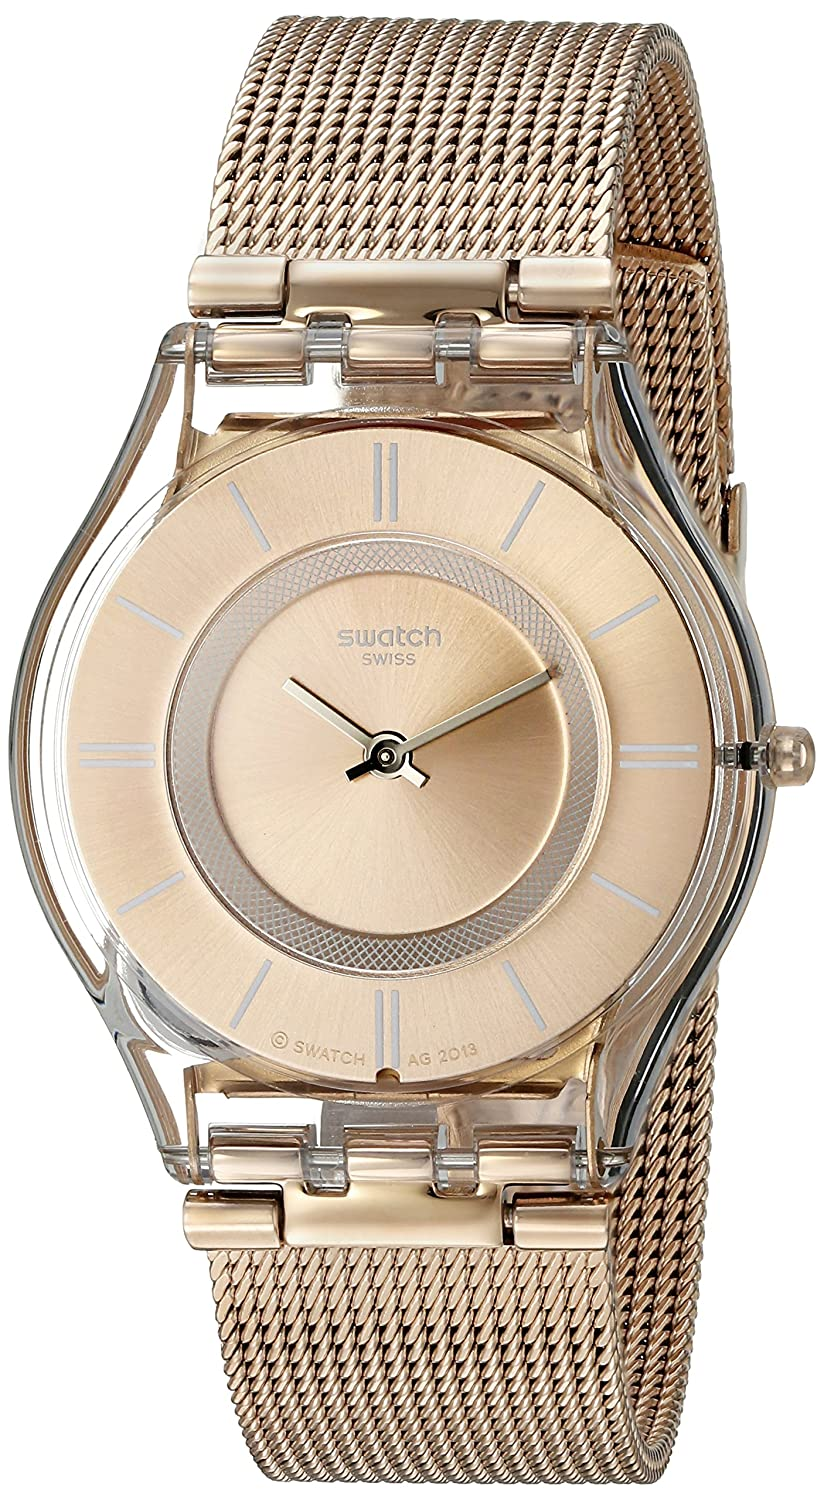 a277749c09 Amazon.com: Swatch Women's SFP115M Skin Rose Gold-Tone Watch with Mesh  Band: Swatch: Watches